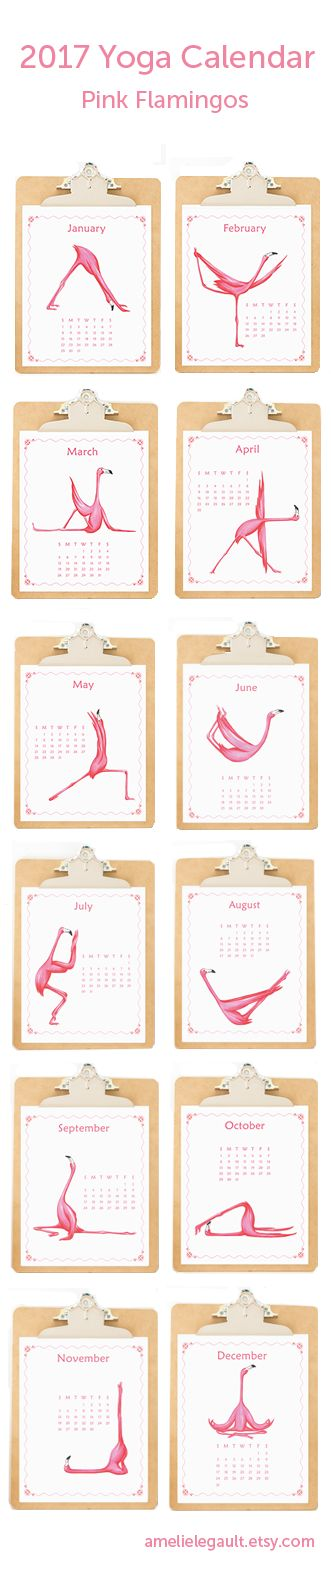 Pink Flamingos Yogis Calendar by artist Amelie Legault, available on Etsy here: https://www.etsy.com/ca/listing/470150880/pink-flamingos-yoga-2017-calendar?ref=related-0  #pinkflamingo 2017calendar #amelielegault #etsy #smallcalendar #wallcalendar #namaste #yogacalendar   ALL RIGHTS RESERVED - Amelie Legault